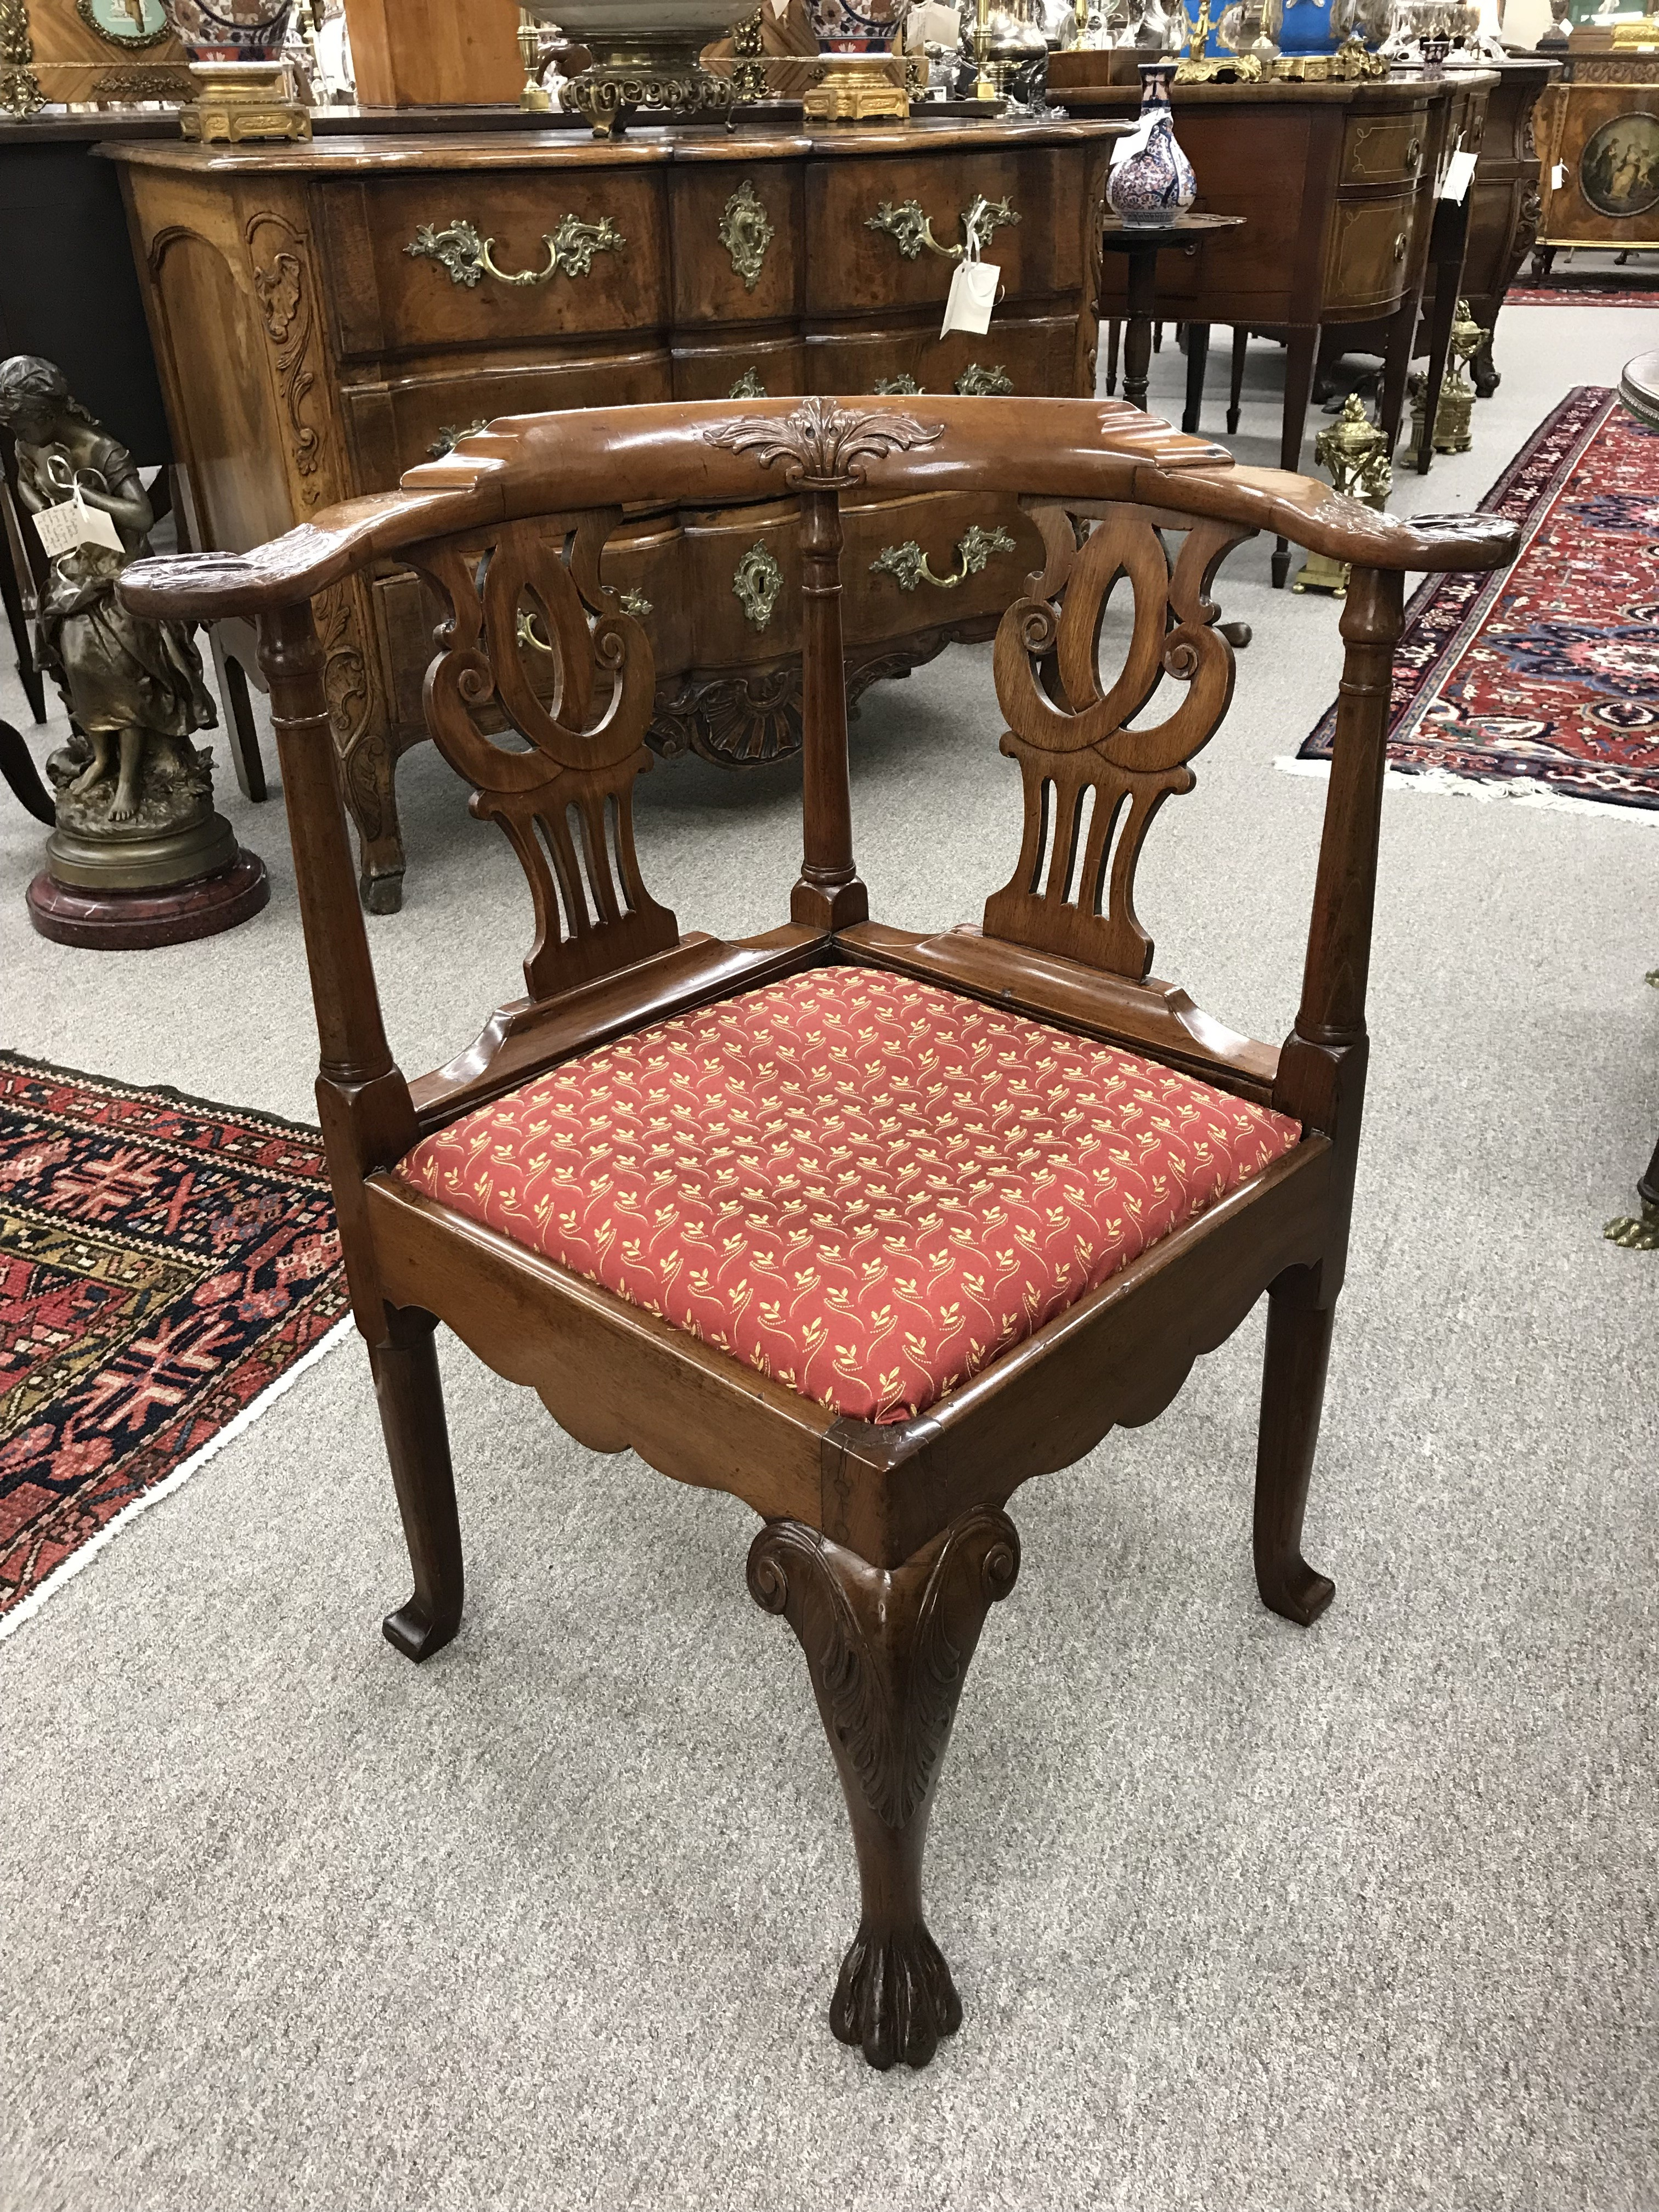 18th Century English Corner Chair